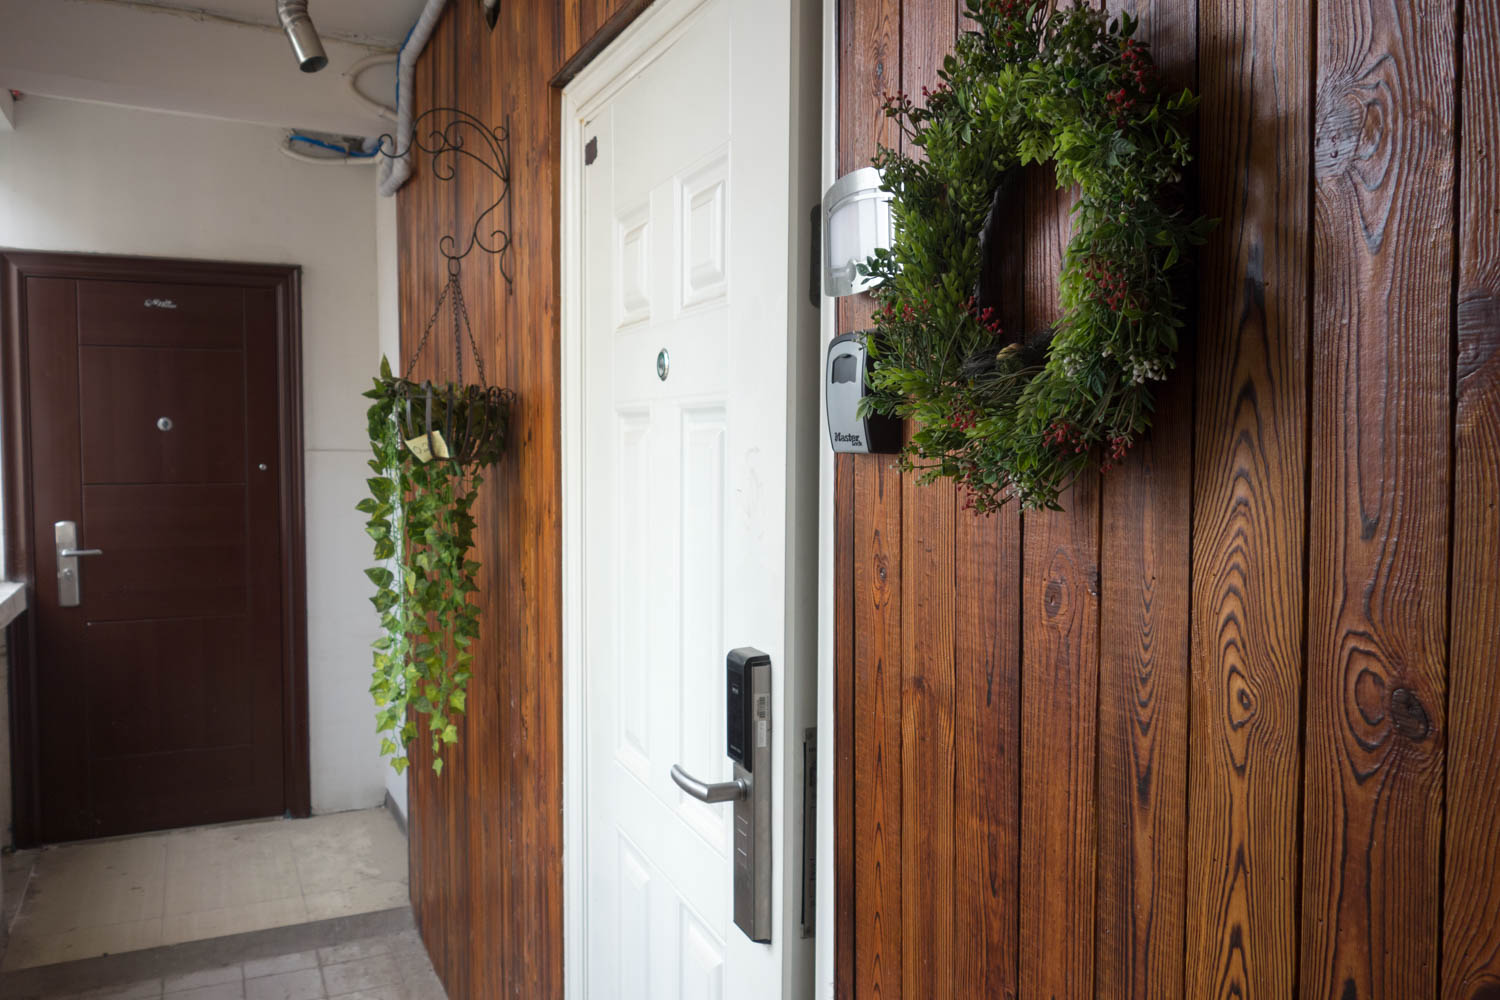 The front door to our Airbnb